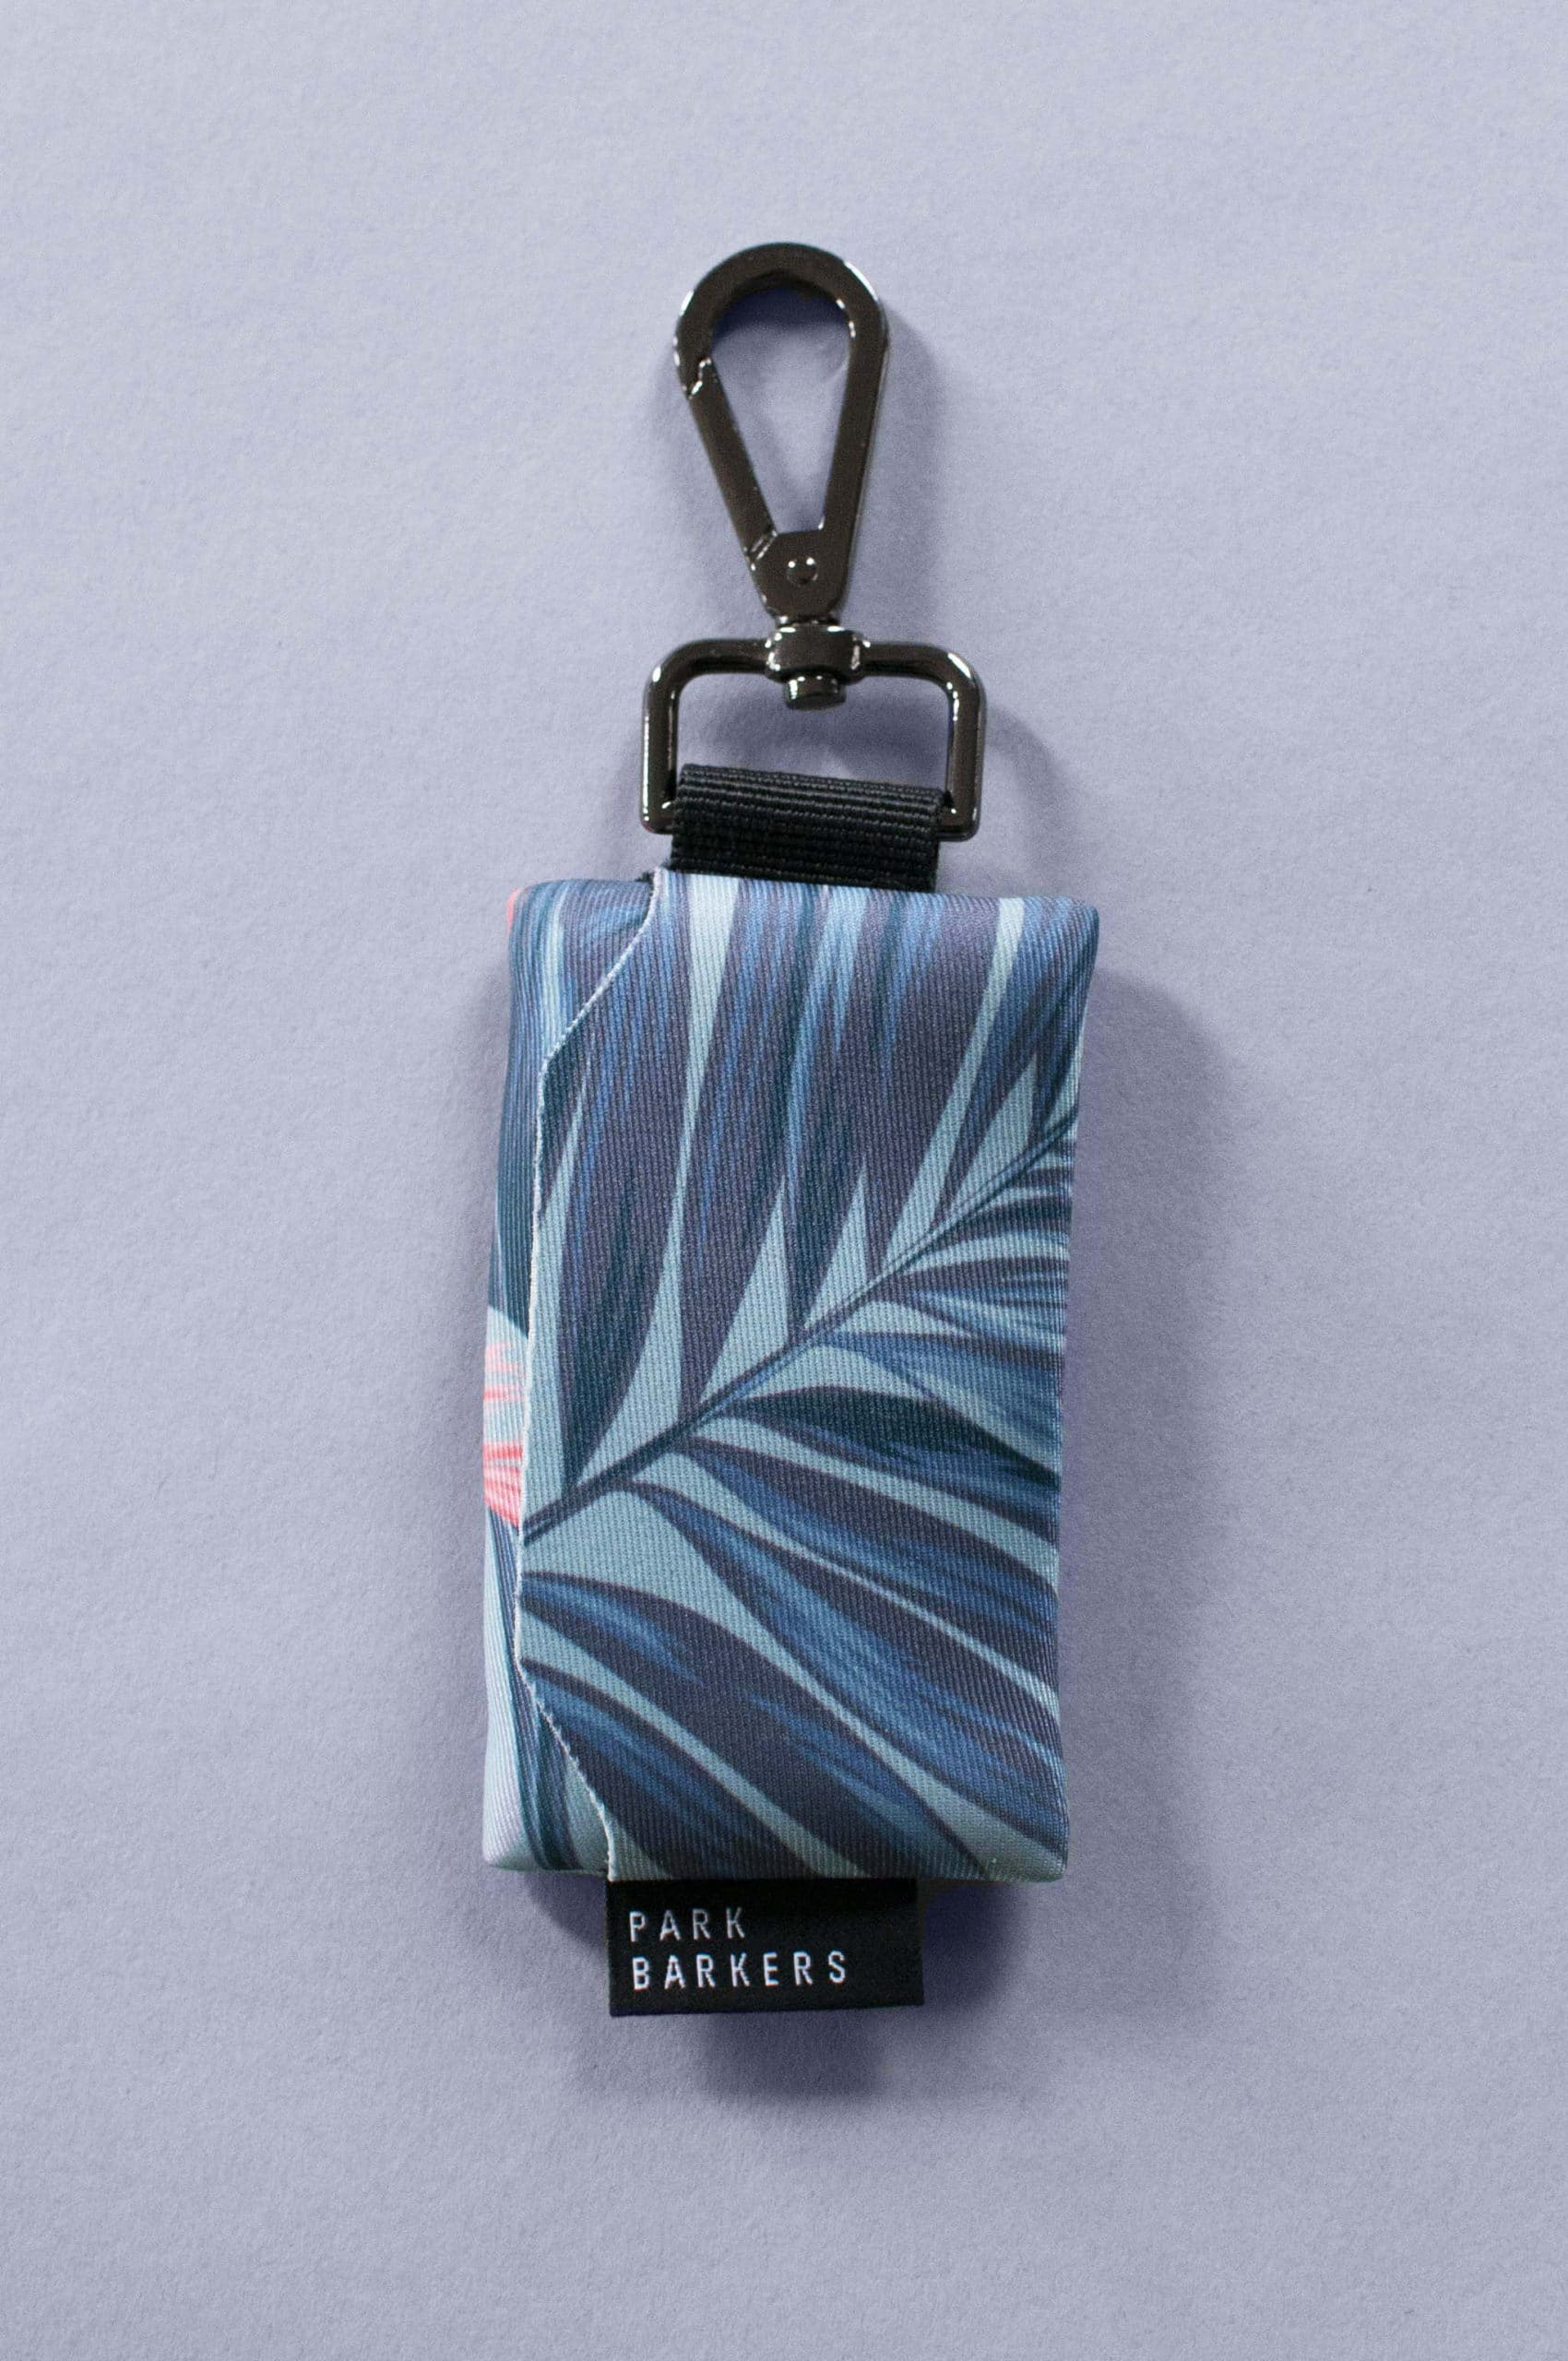 Tropical style waste bag holder from Park Barkers